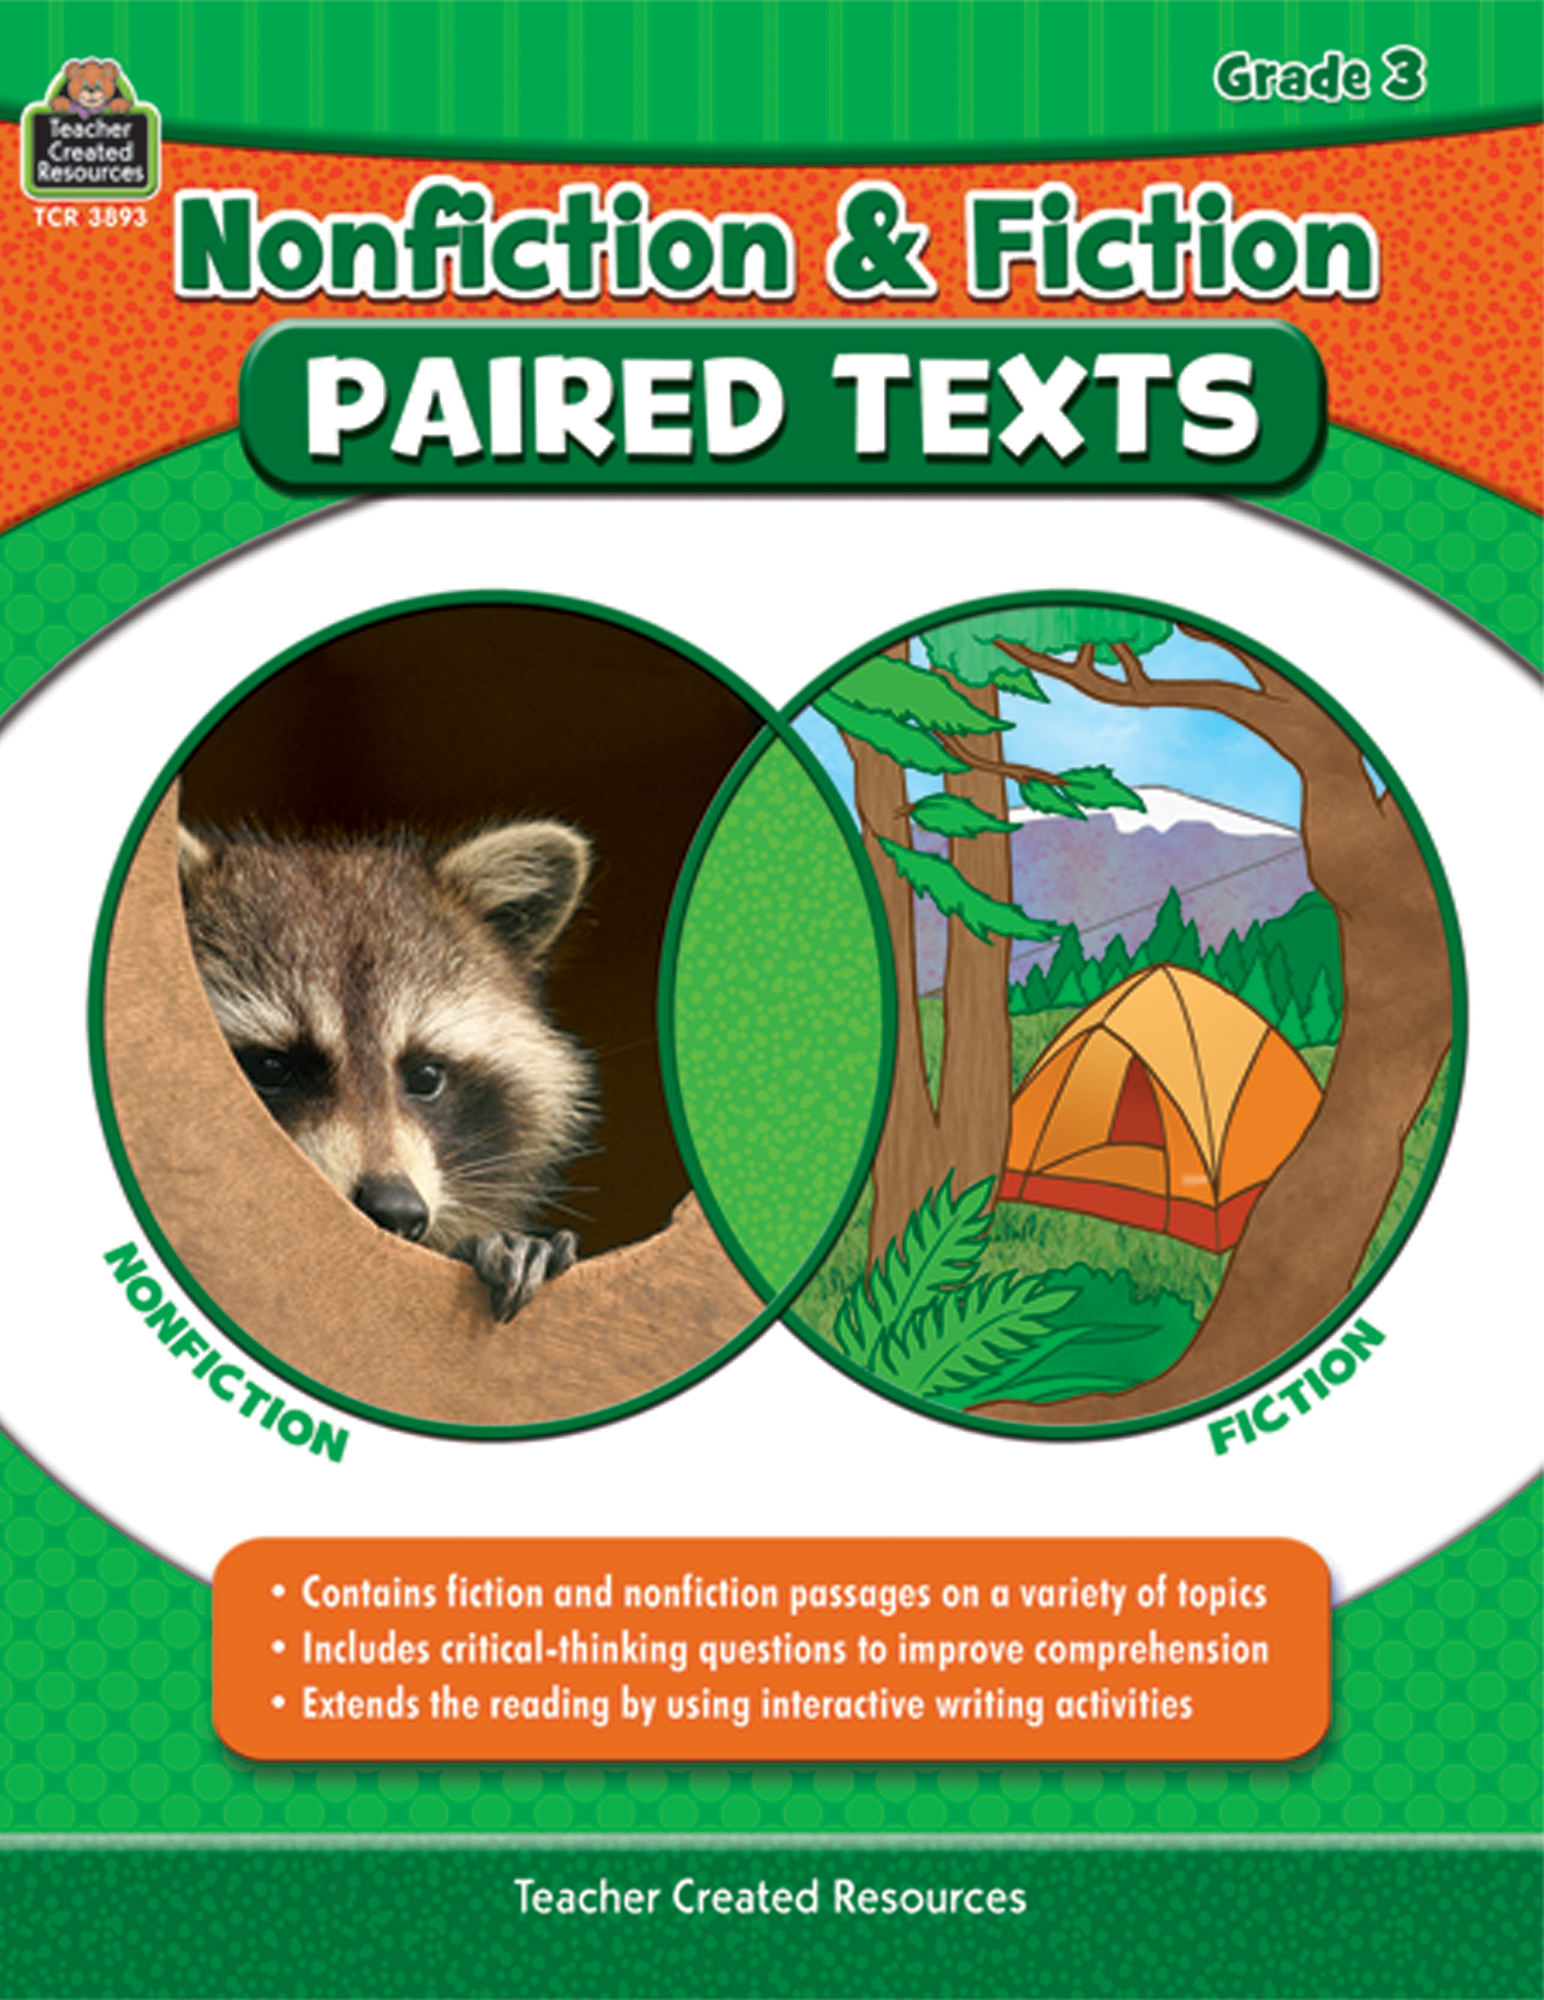 Worksheet Reading Text For Grade 3 mastering complex text using multiple reading sources grade 3 nonfiction and fiction paired texts 3